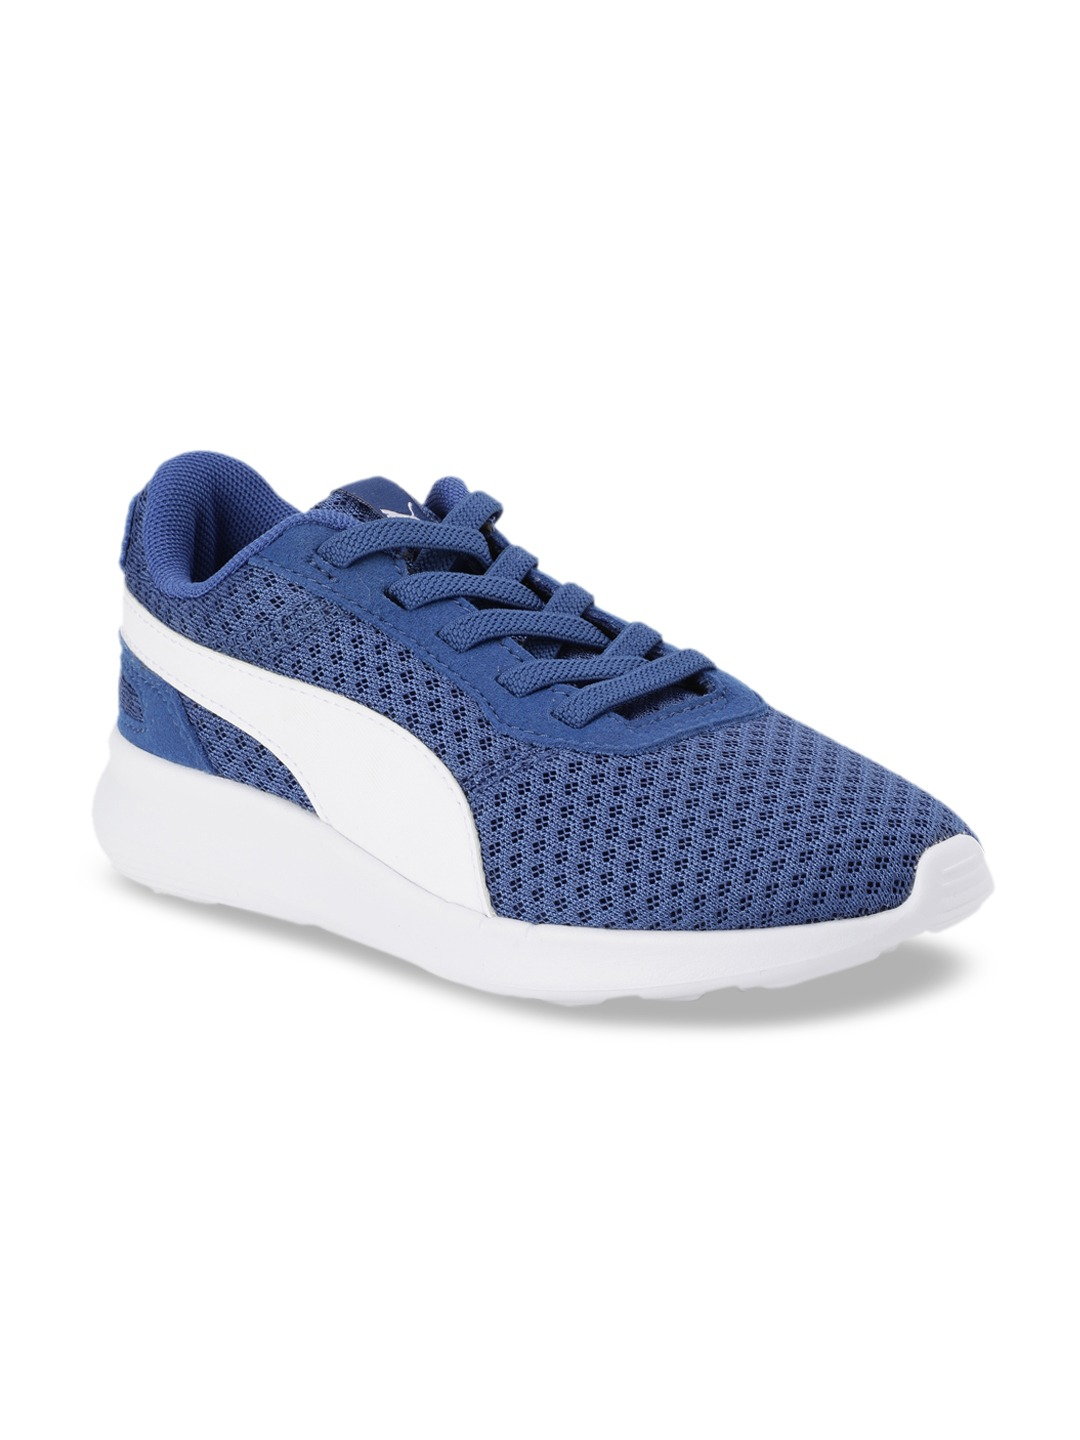 Blue Mesh ST Activate AC PS Galaxy Running Shoes